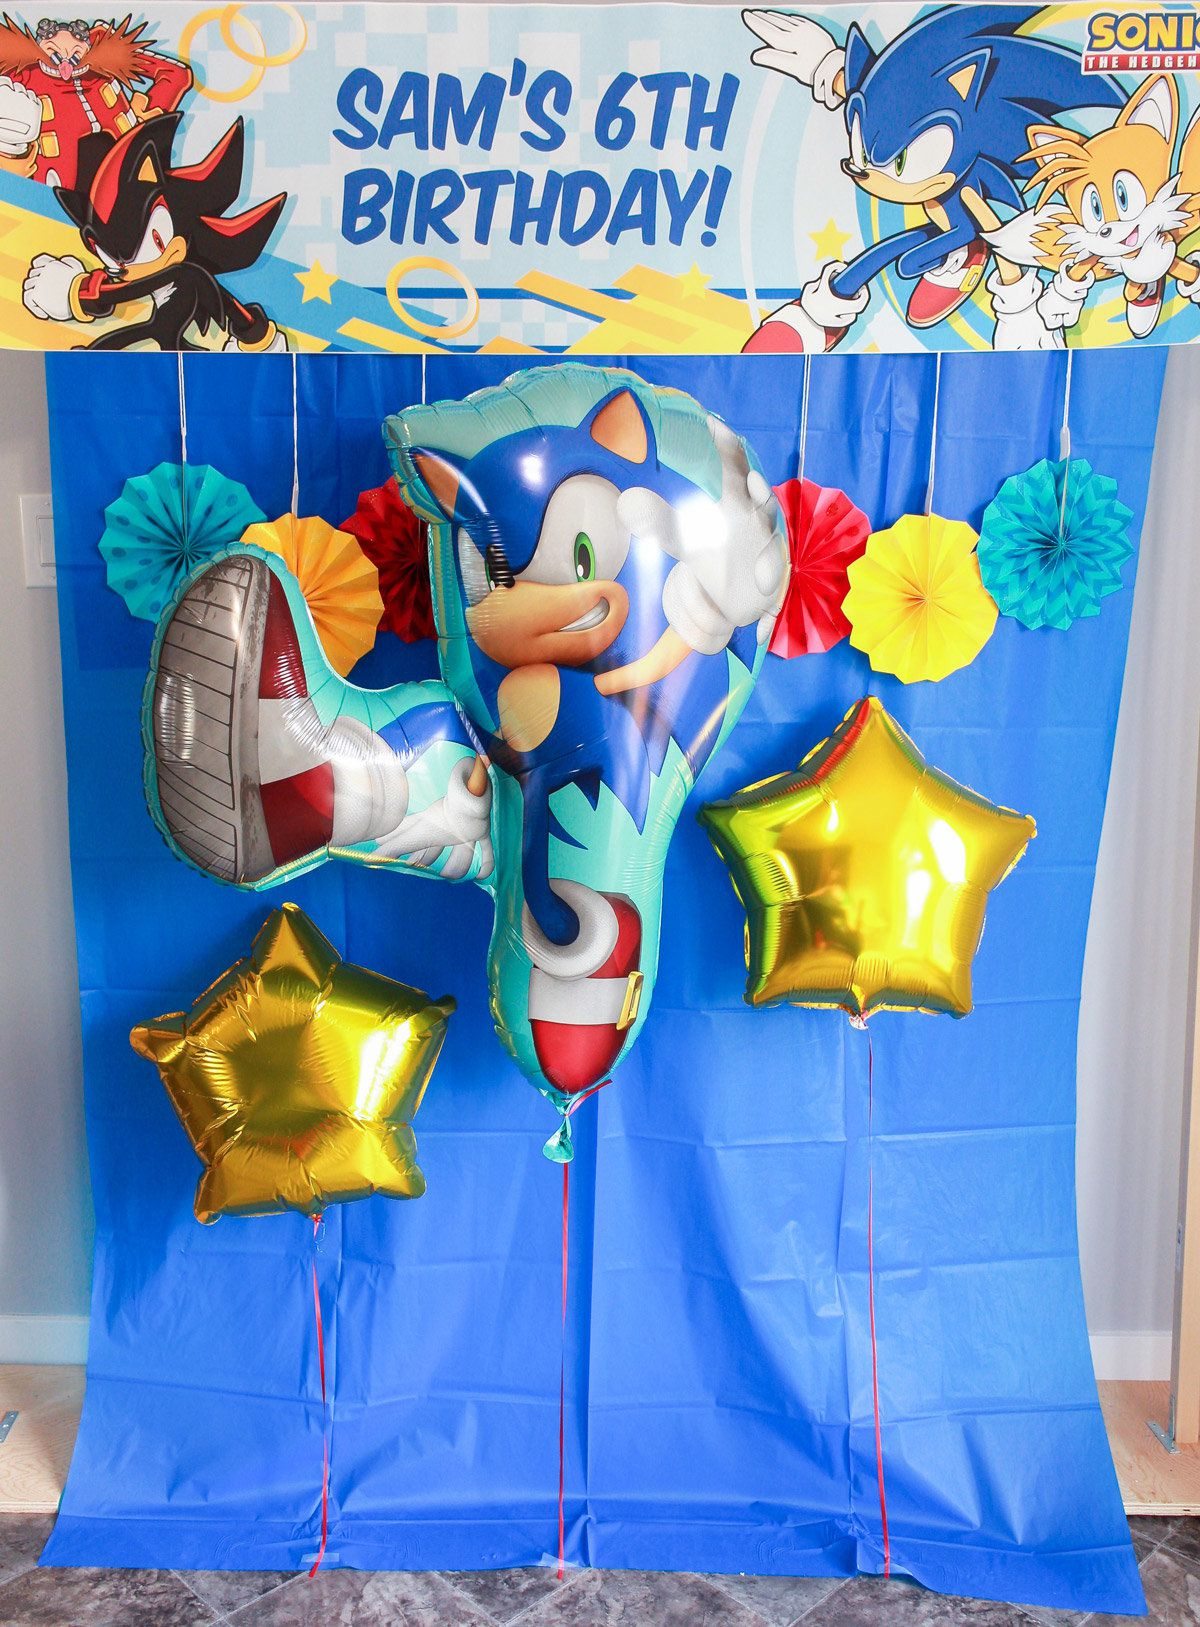 Sonic the Hedgehog Party - Photobooth